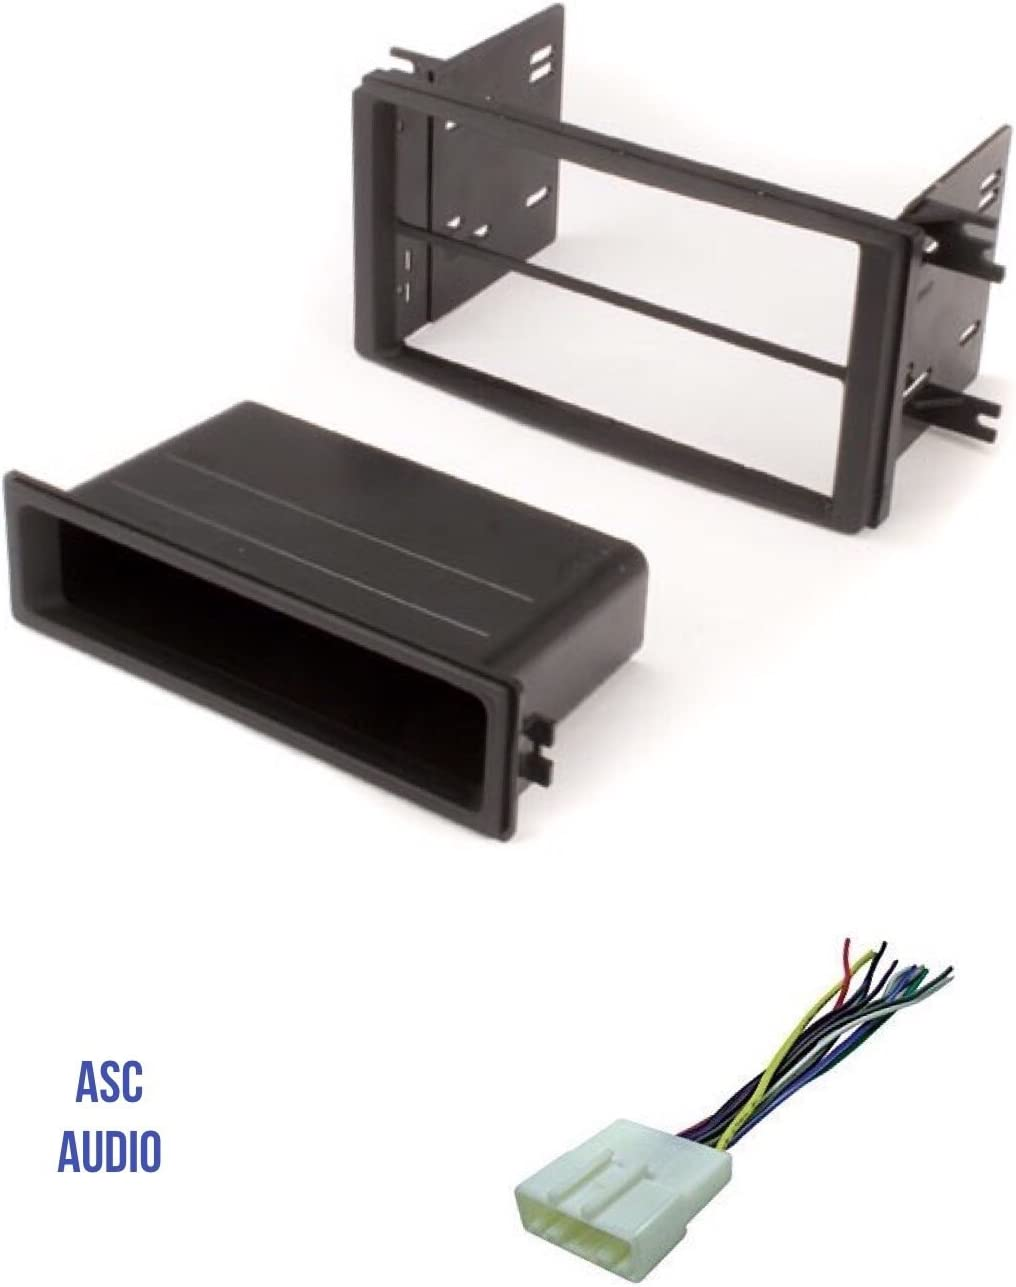 2008-2011 Subaru Impreza No Factory NAV ASC Car Stereo Install Dash Kit and Wire Harness for installing an Aftermarket Single or Double Din Radio for 2009-2013 Subaru Forester 2008-2014 Subaru WRX